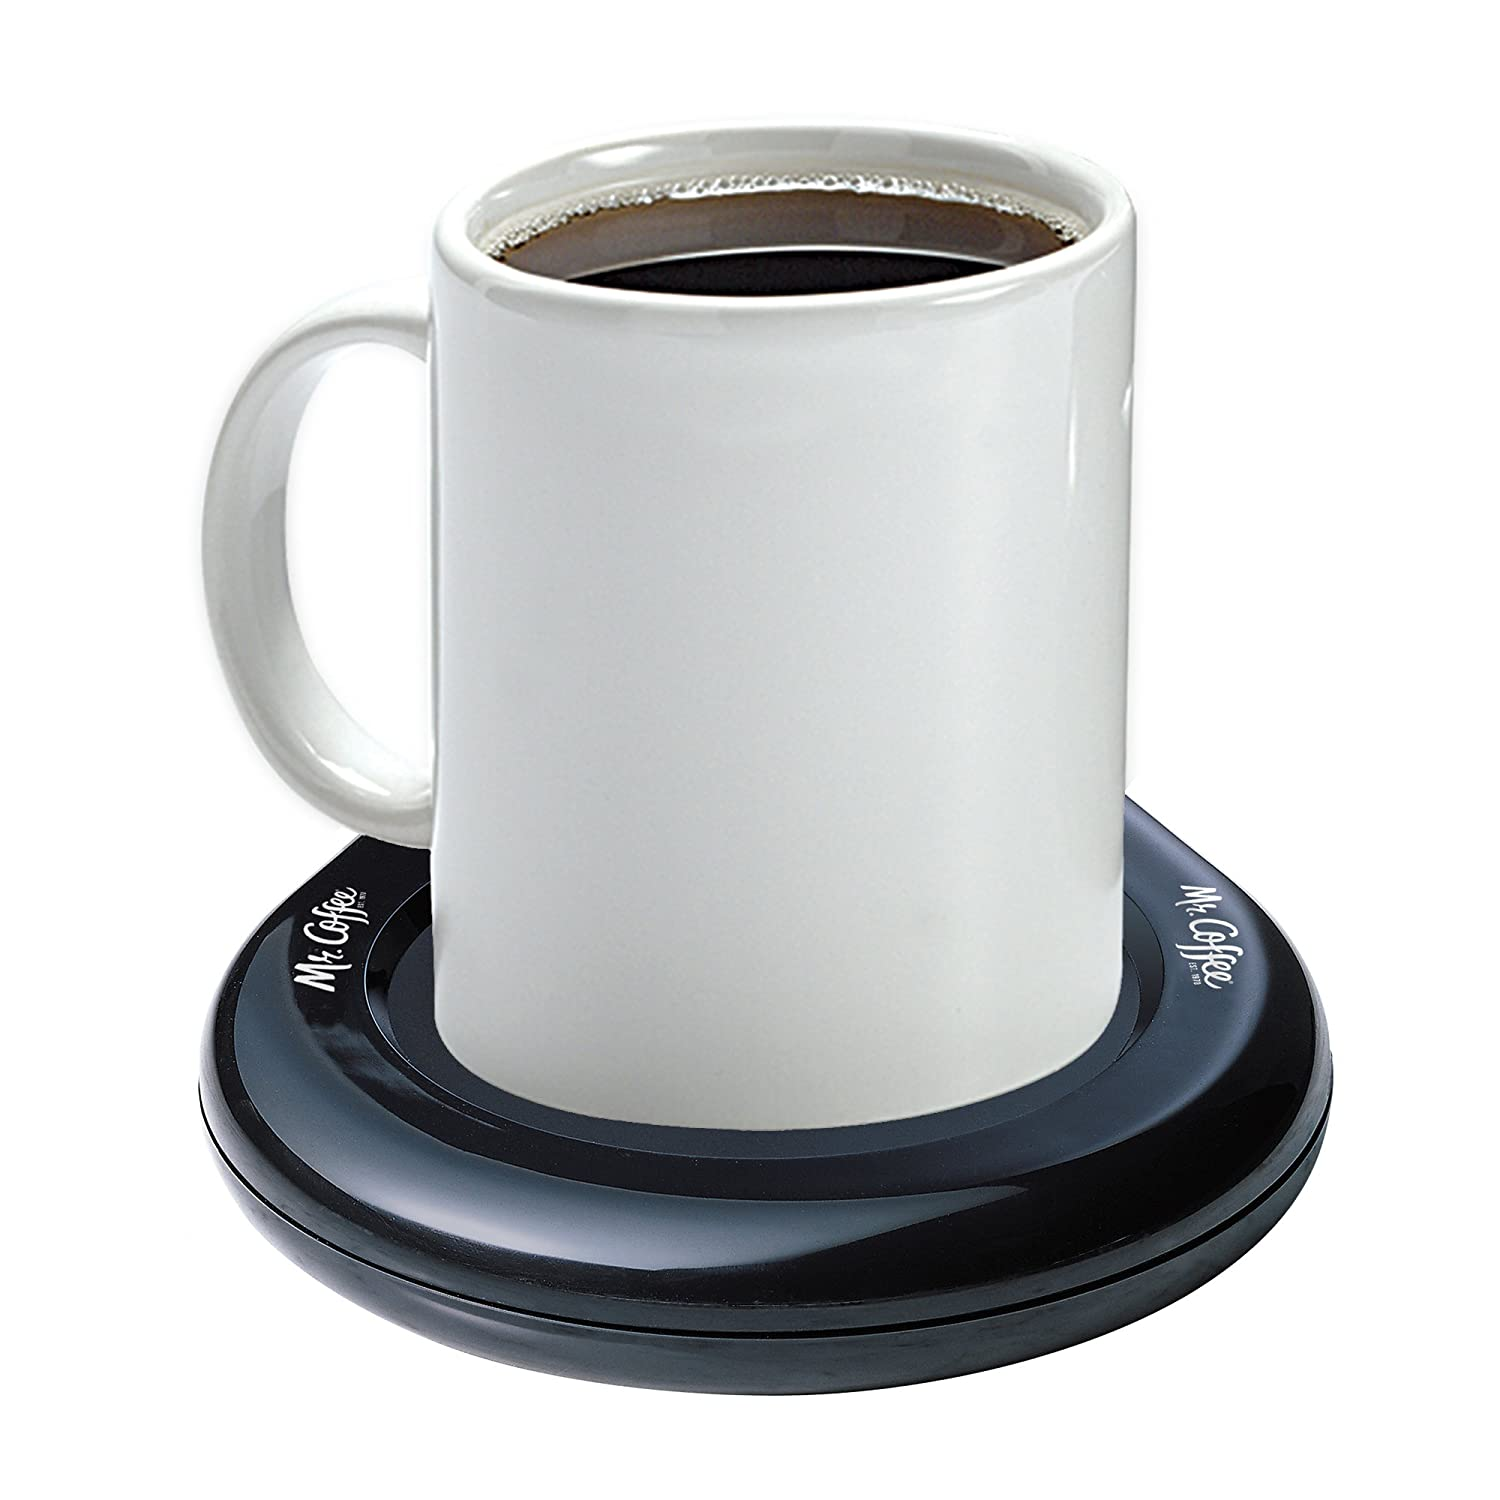 Mr. Coffee Mug Warmer